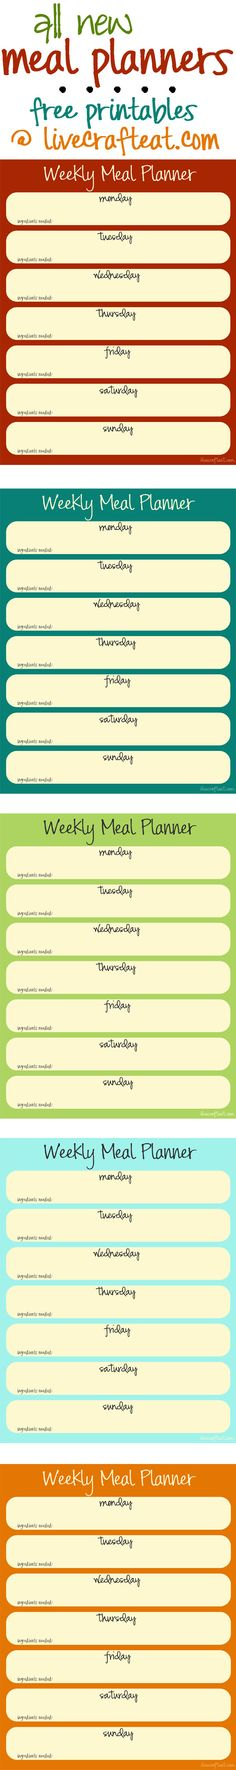 Pin by Charlene Nanninga on DIY ideas Pinterest 12 month - Perpetual Calendar Template